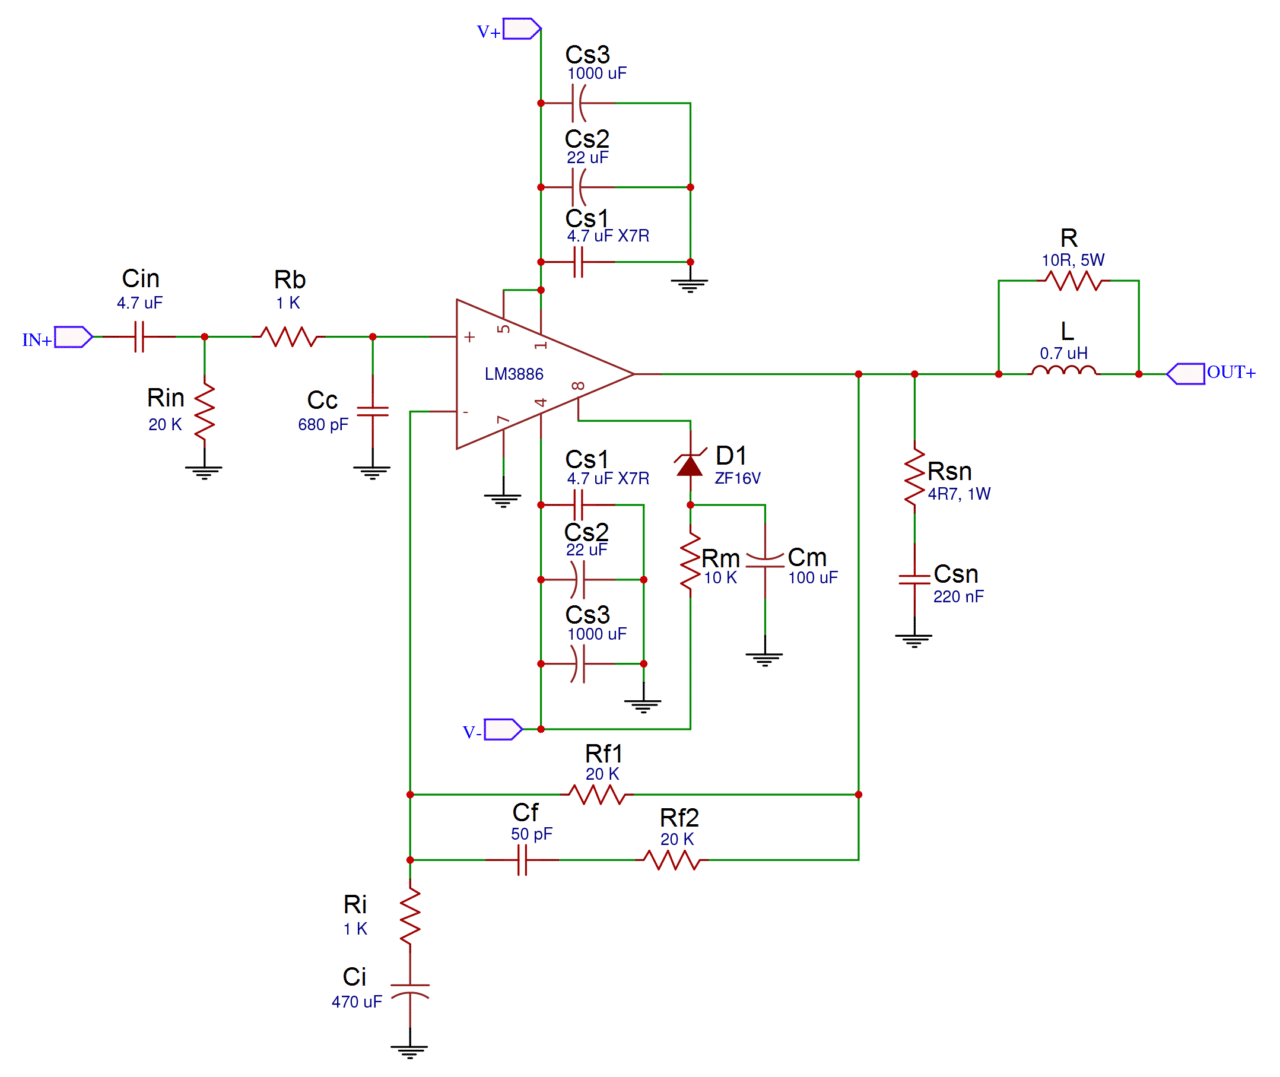 A Complete Guide To Design And Build Hi Fi Lm3886 Amplifier Silent Drive Wiring Diagram Ill Be Using The Schematic Below Its Basically Same As One In Datasheet But With Optional Stability Components Included